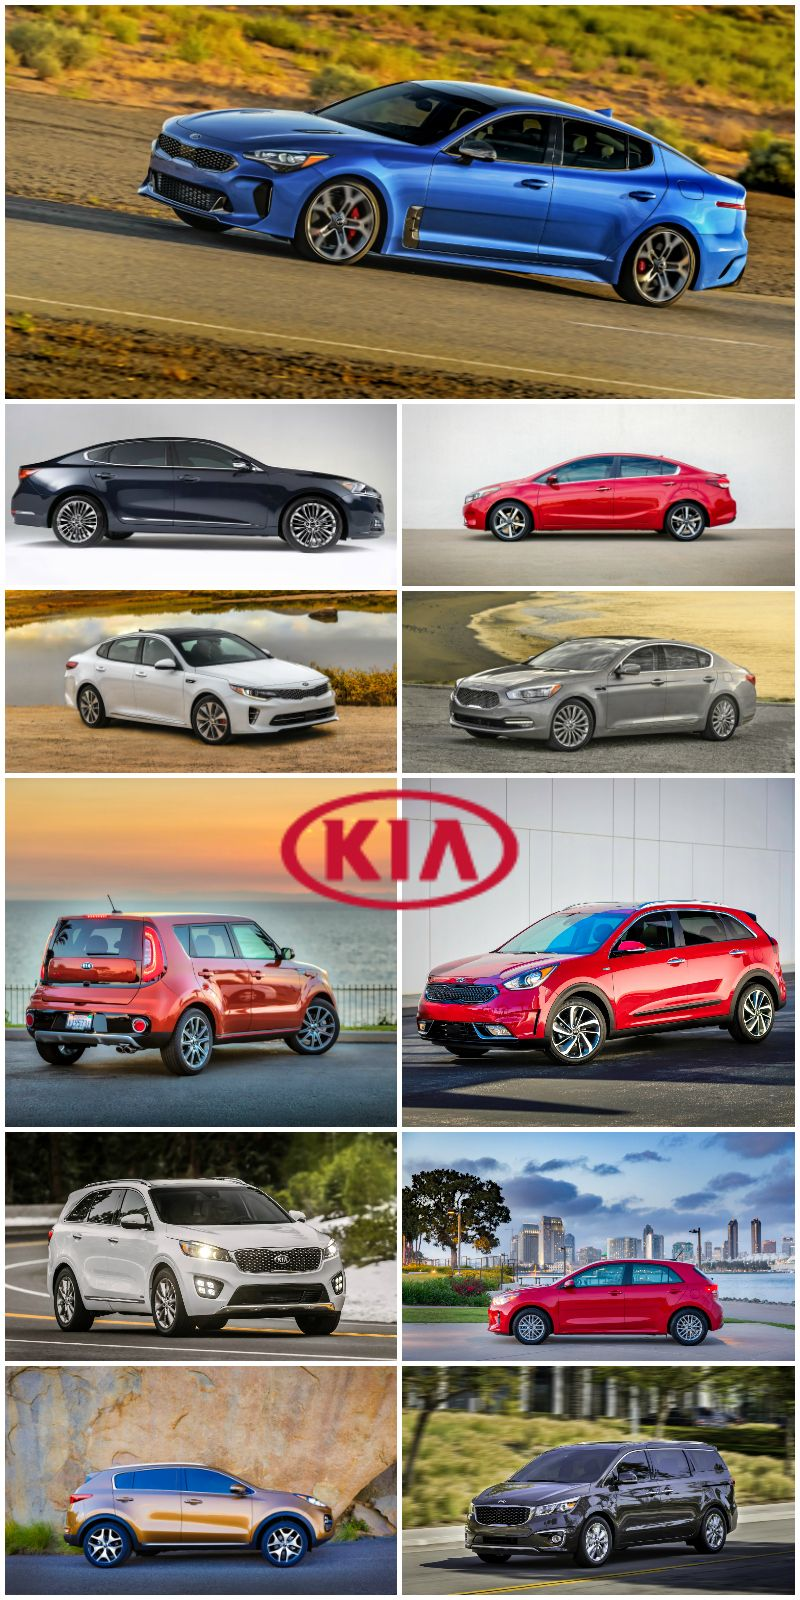 Kia and Reliability A Moment of Personal Validation